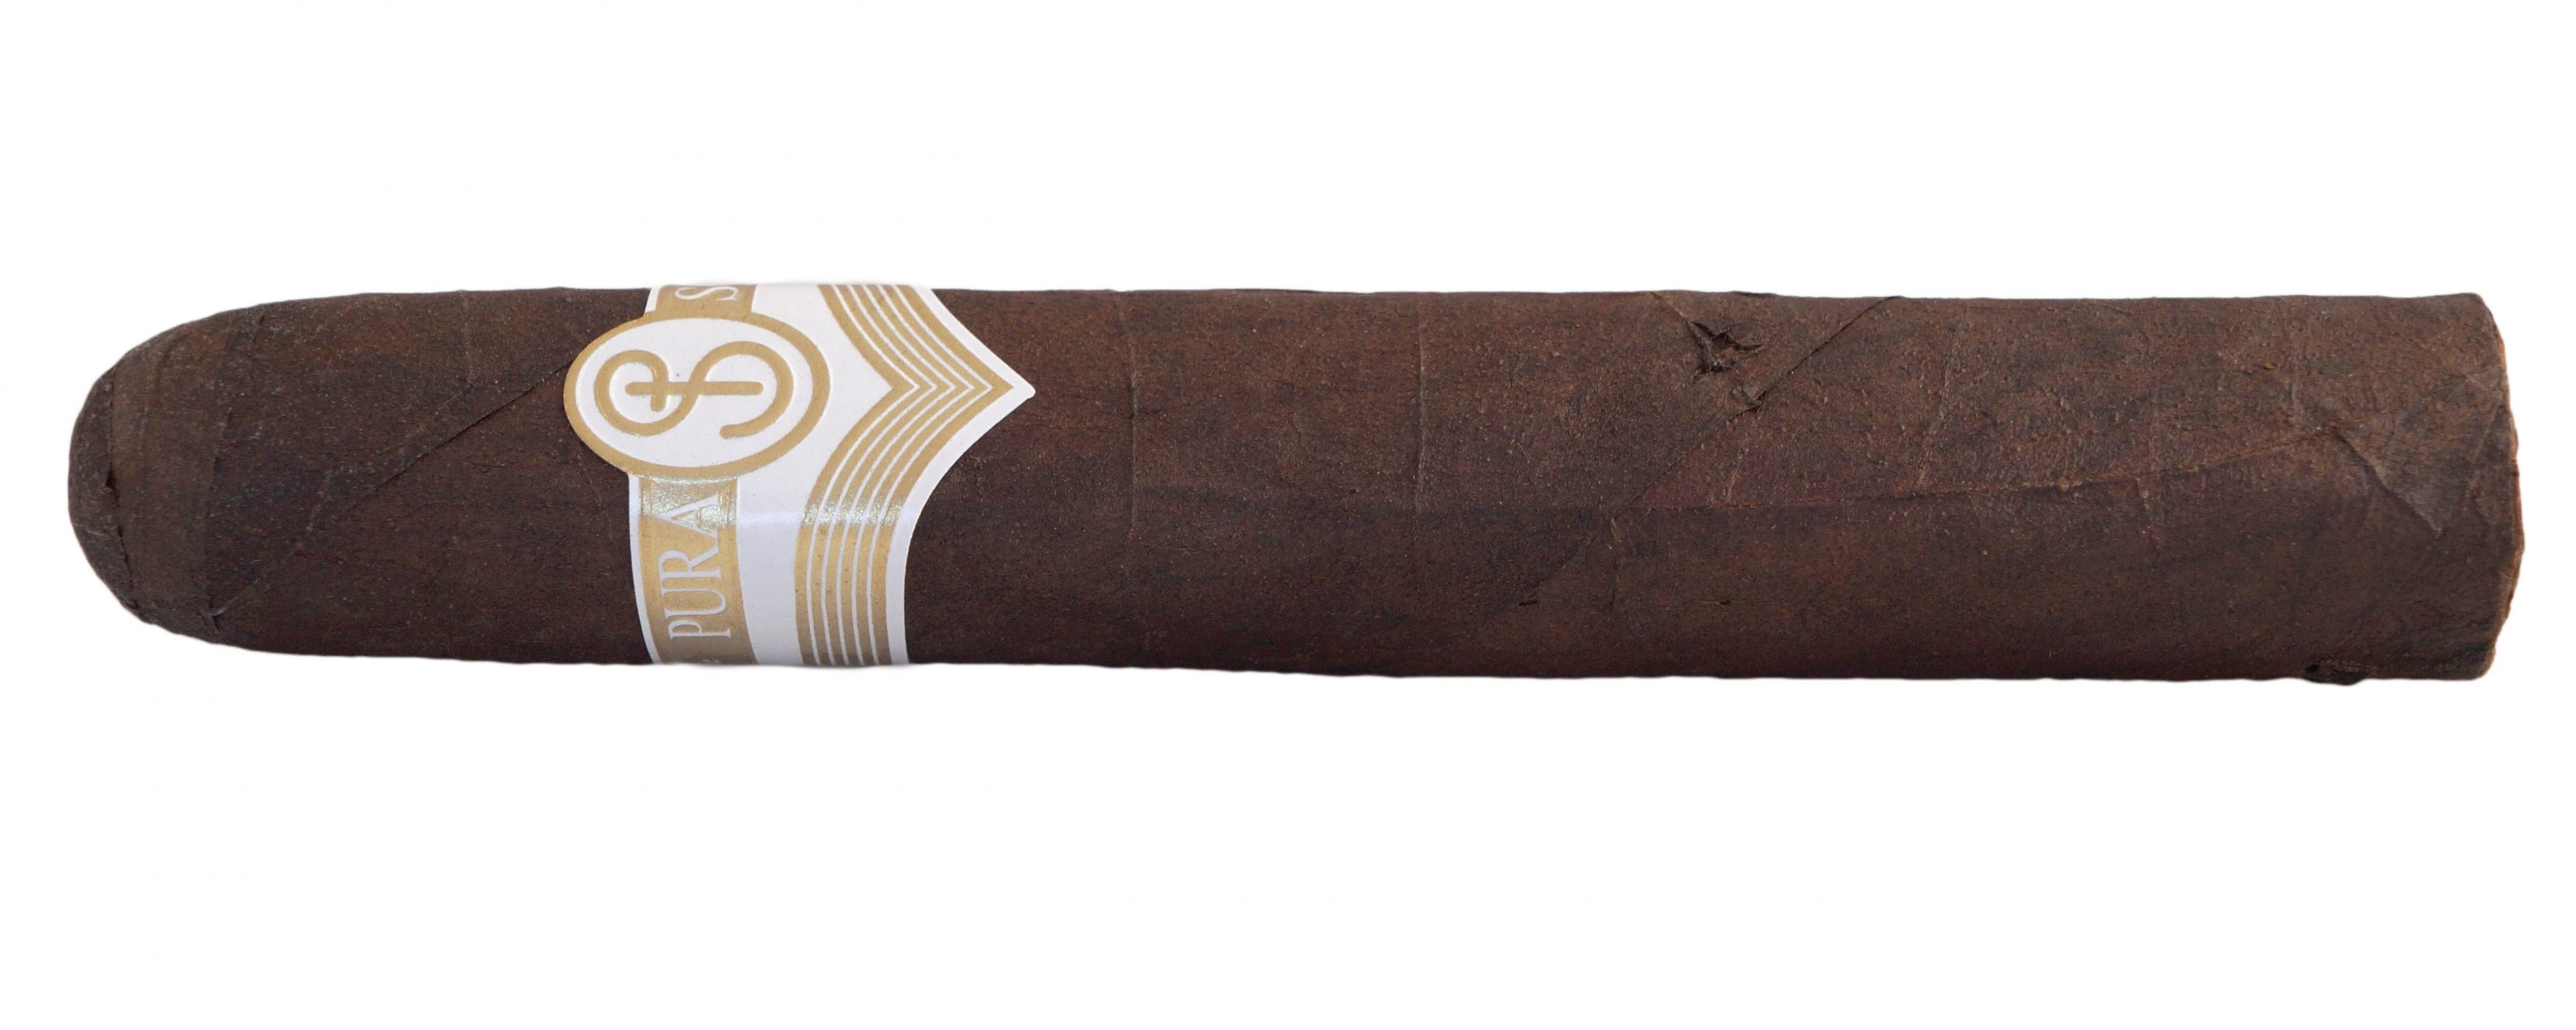 Blind Cigar Review: Pura Soul | Maduro Robusto